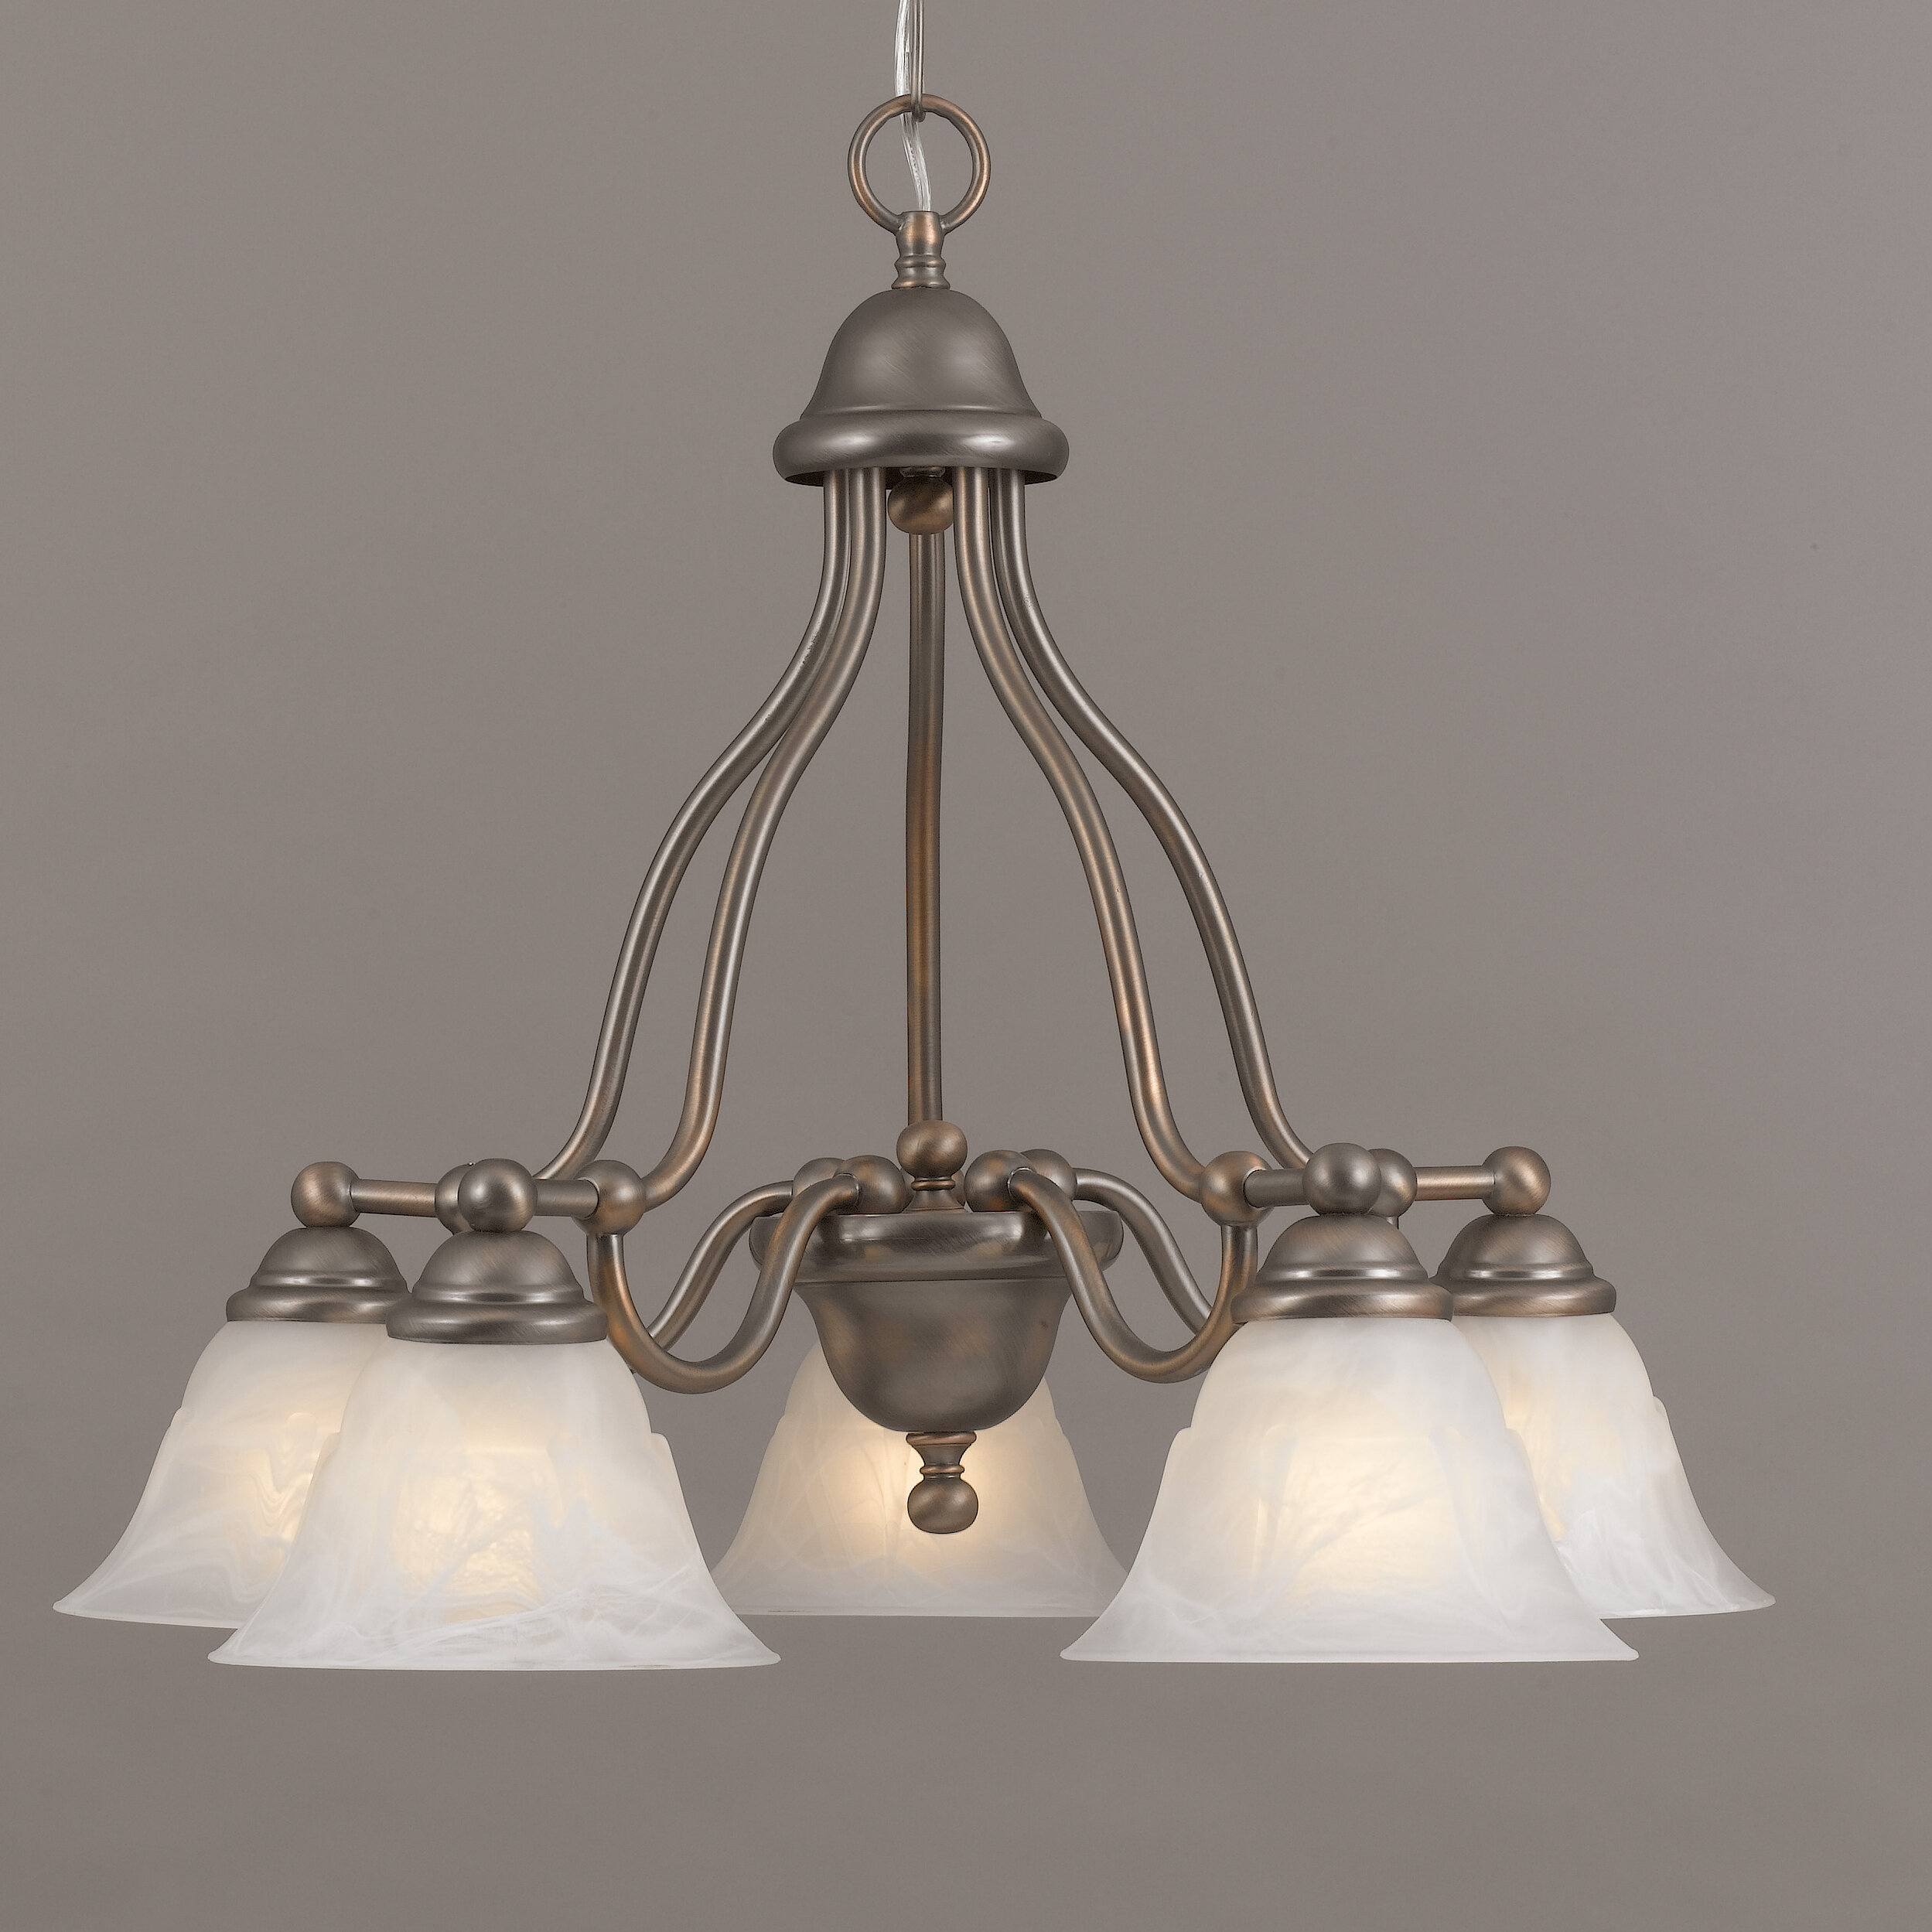 Classic Lighting Providence 5 Light Shaded Chandelier & Reviews